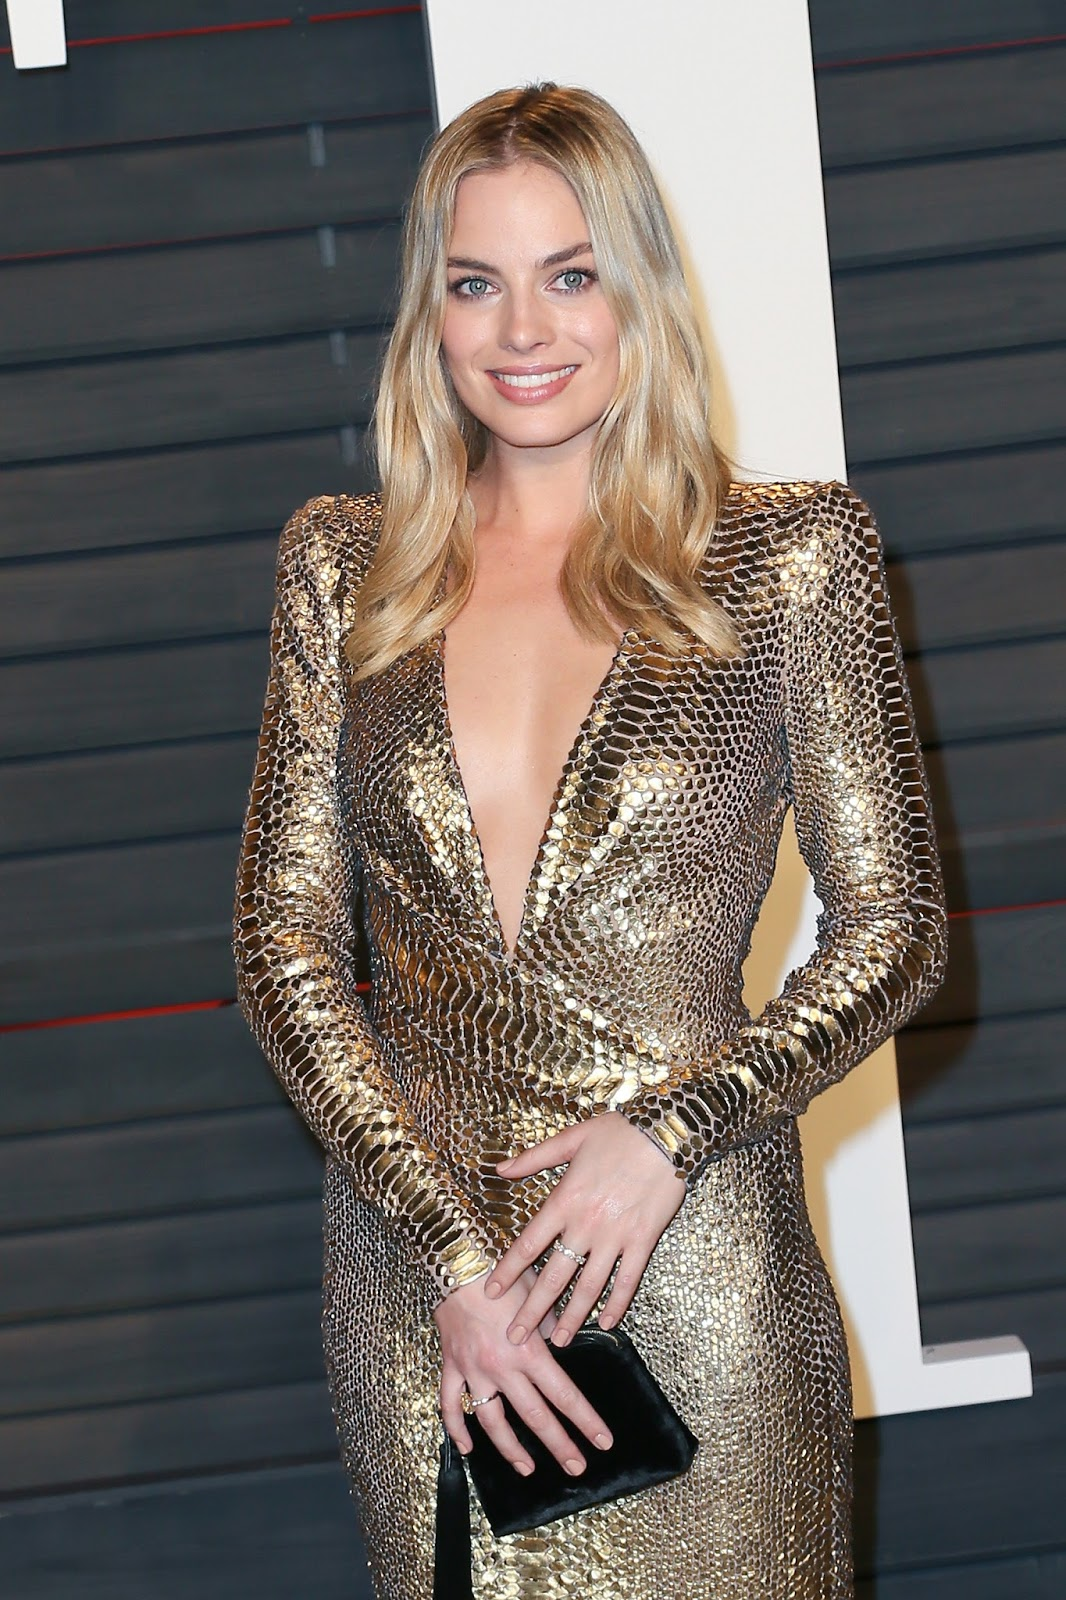 Dimple Girl Wallpaper Margot Robbie Cleavage Show Photos